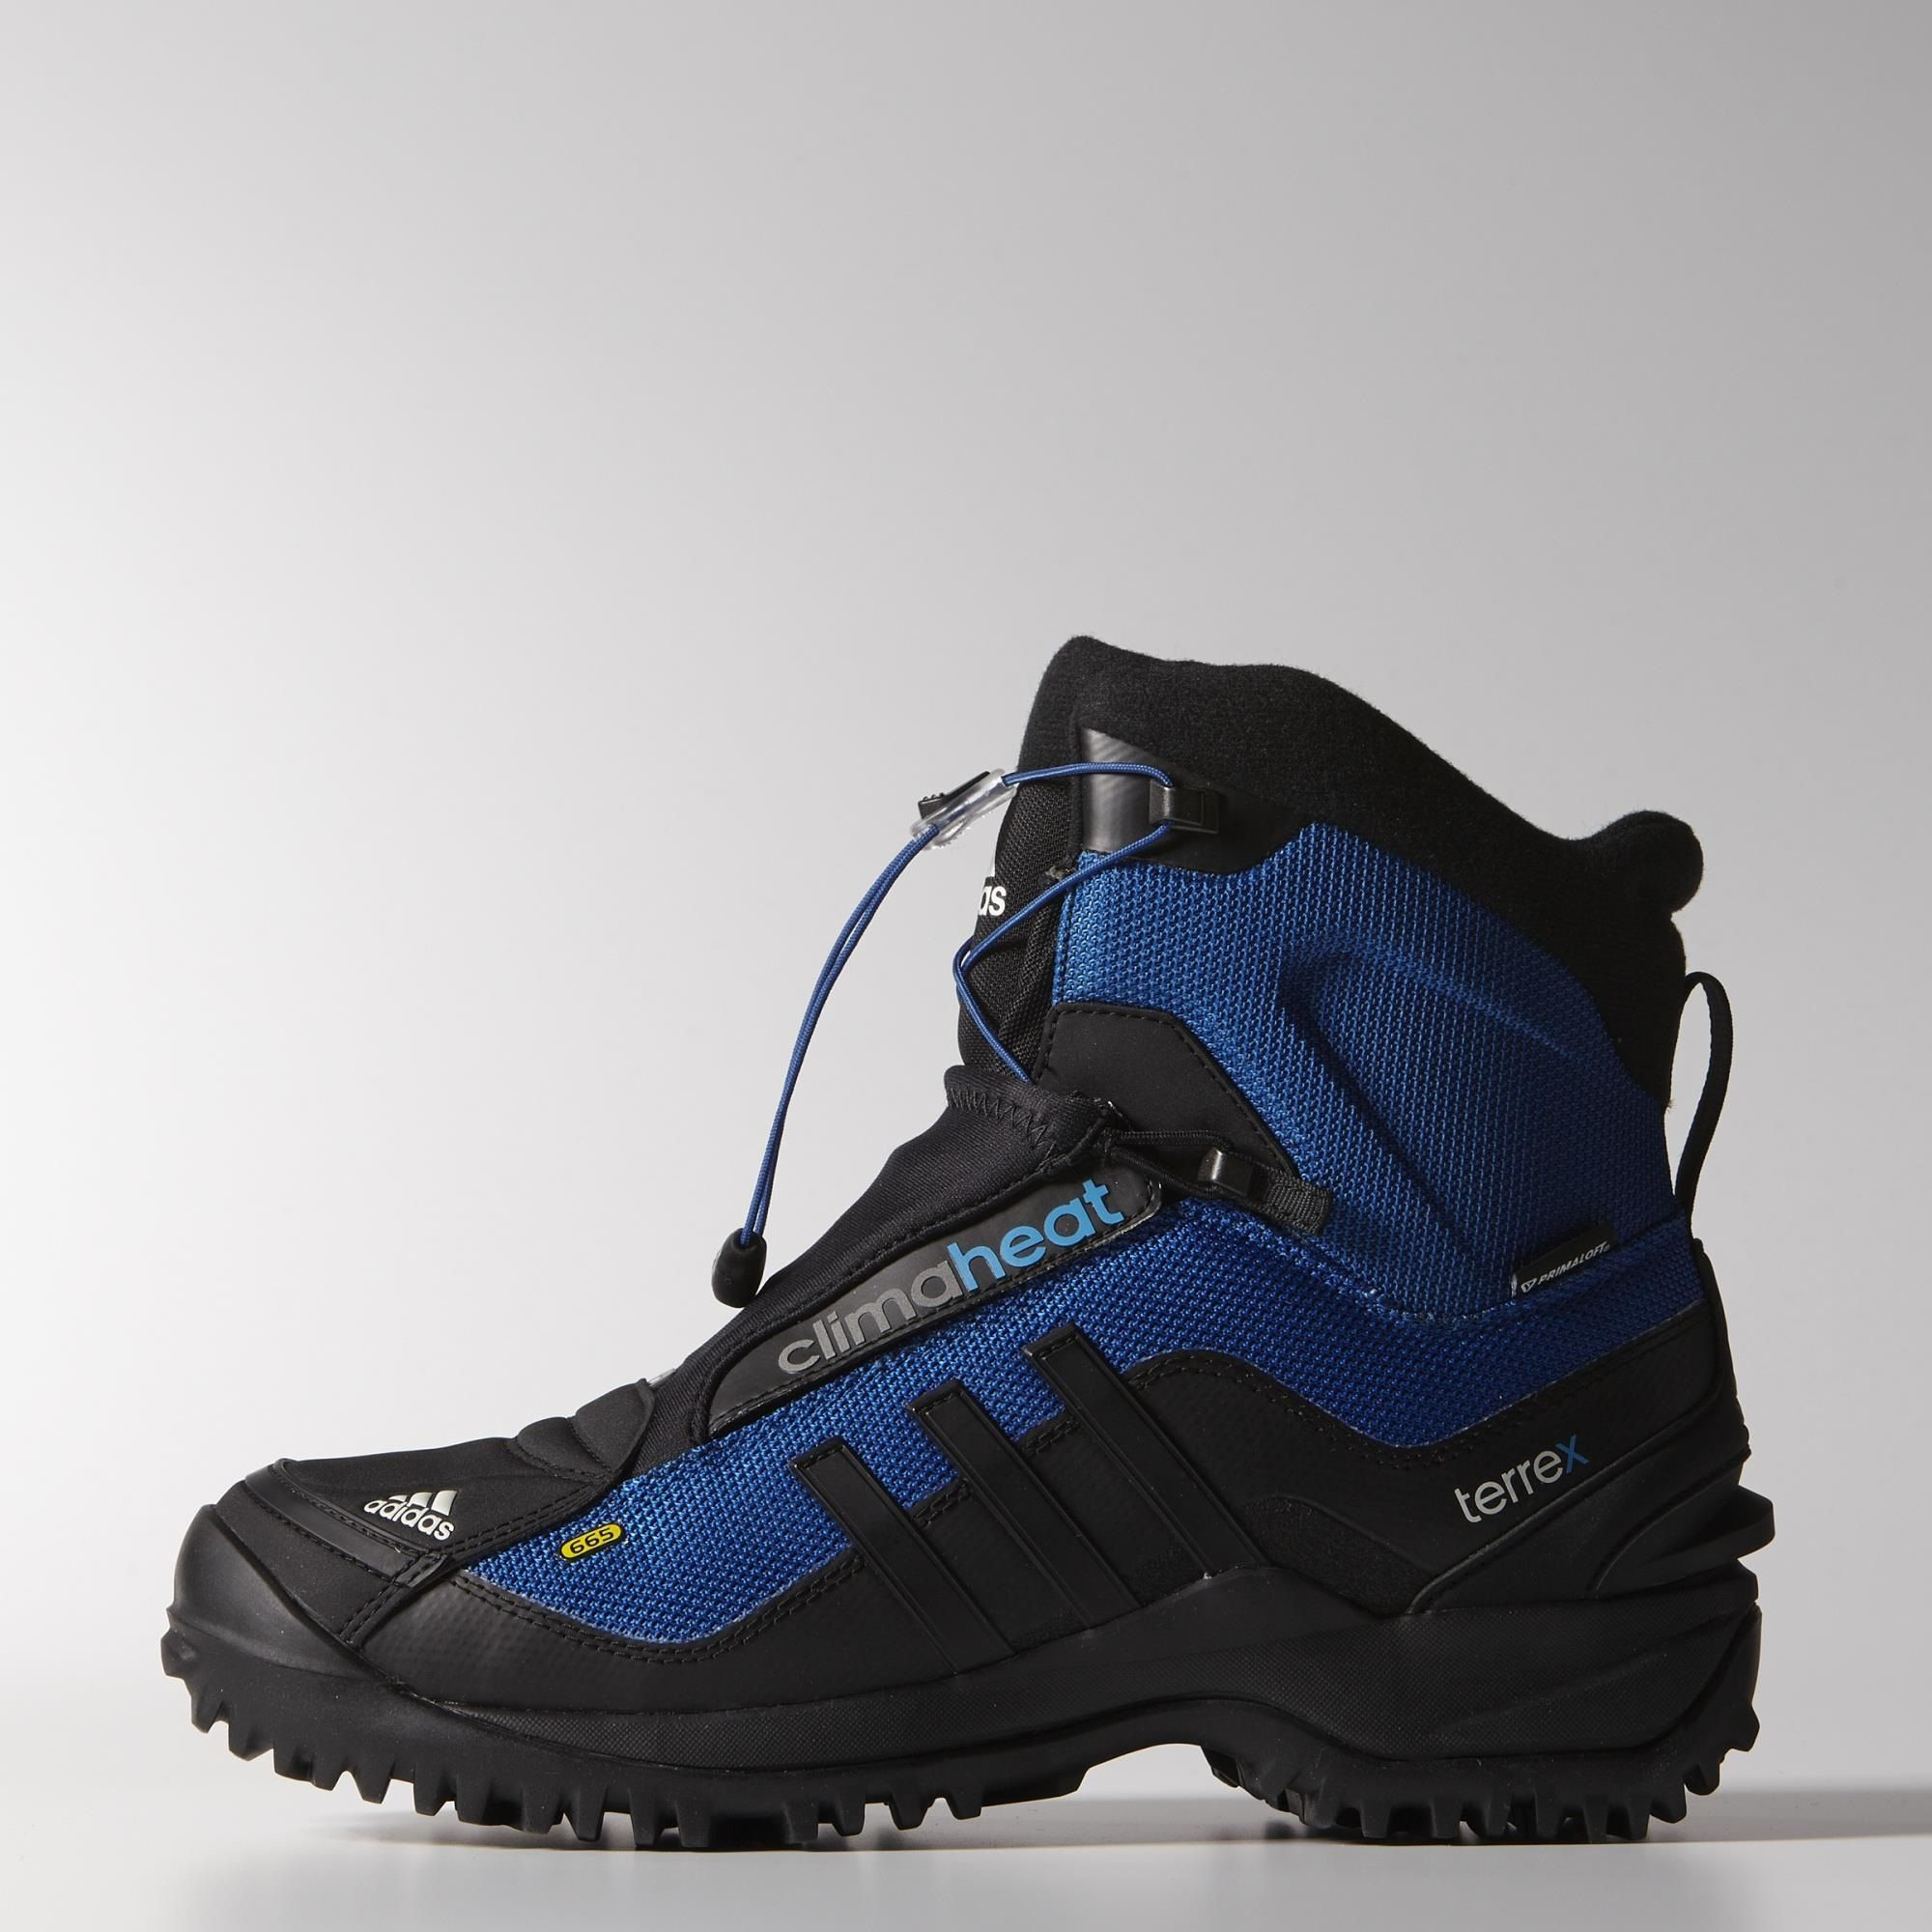 adidas Terrex Conrax Climaheat ClimaProof | Boots, Bike